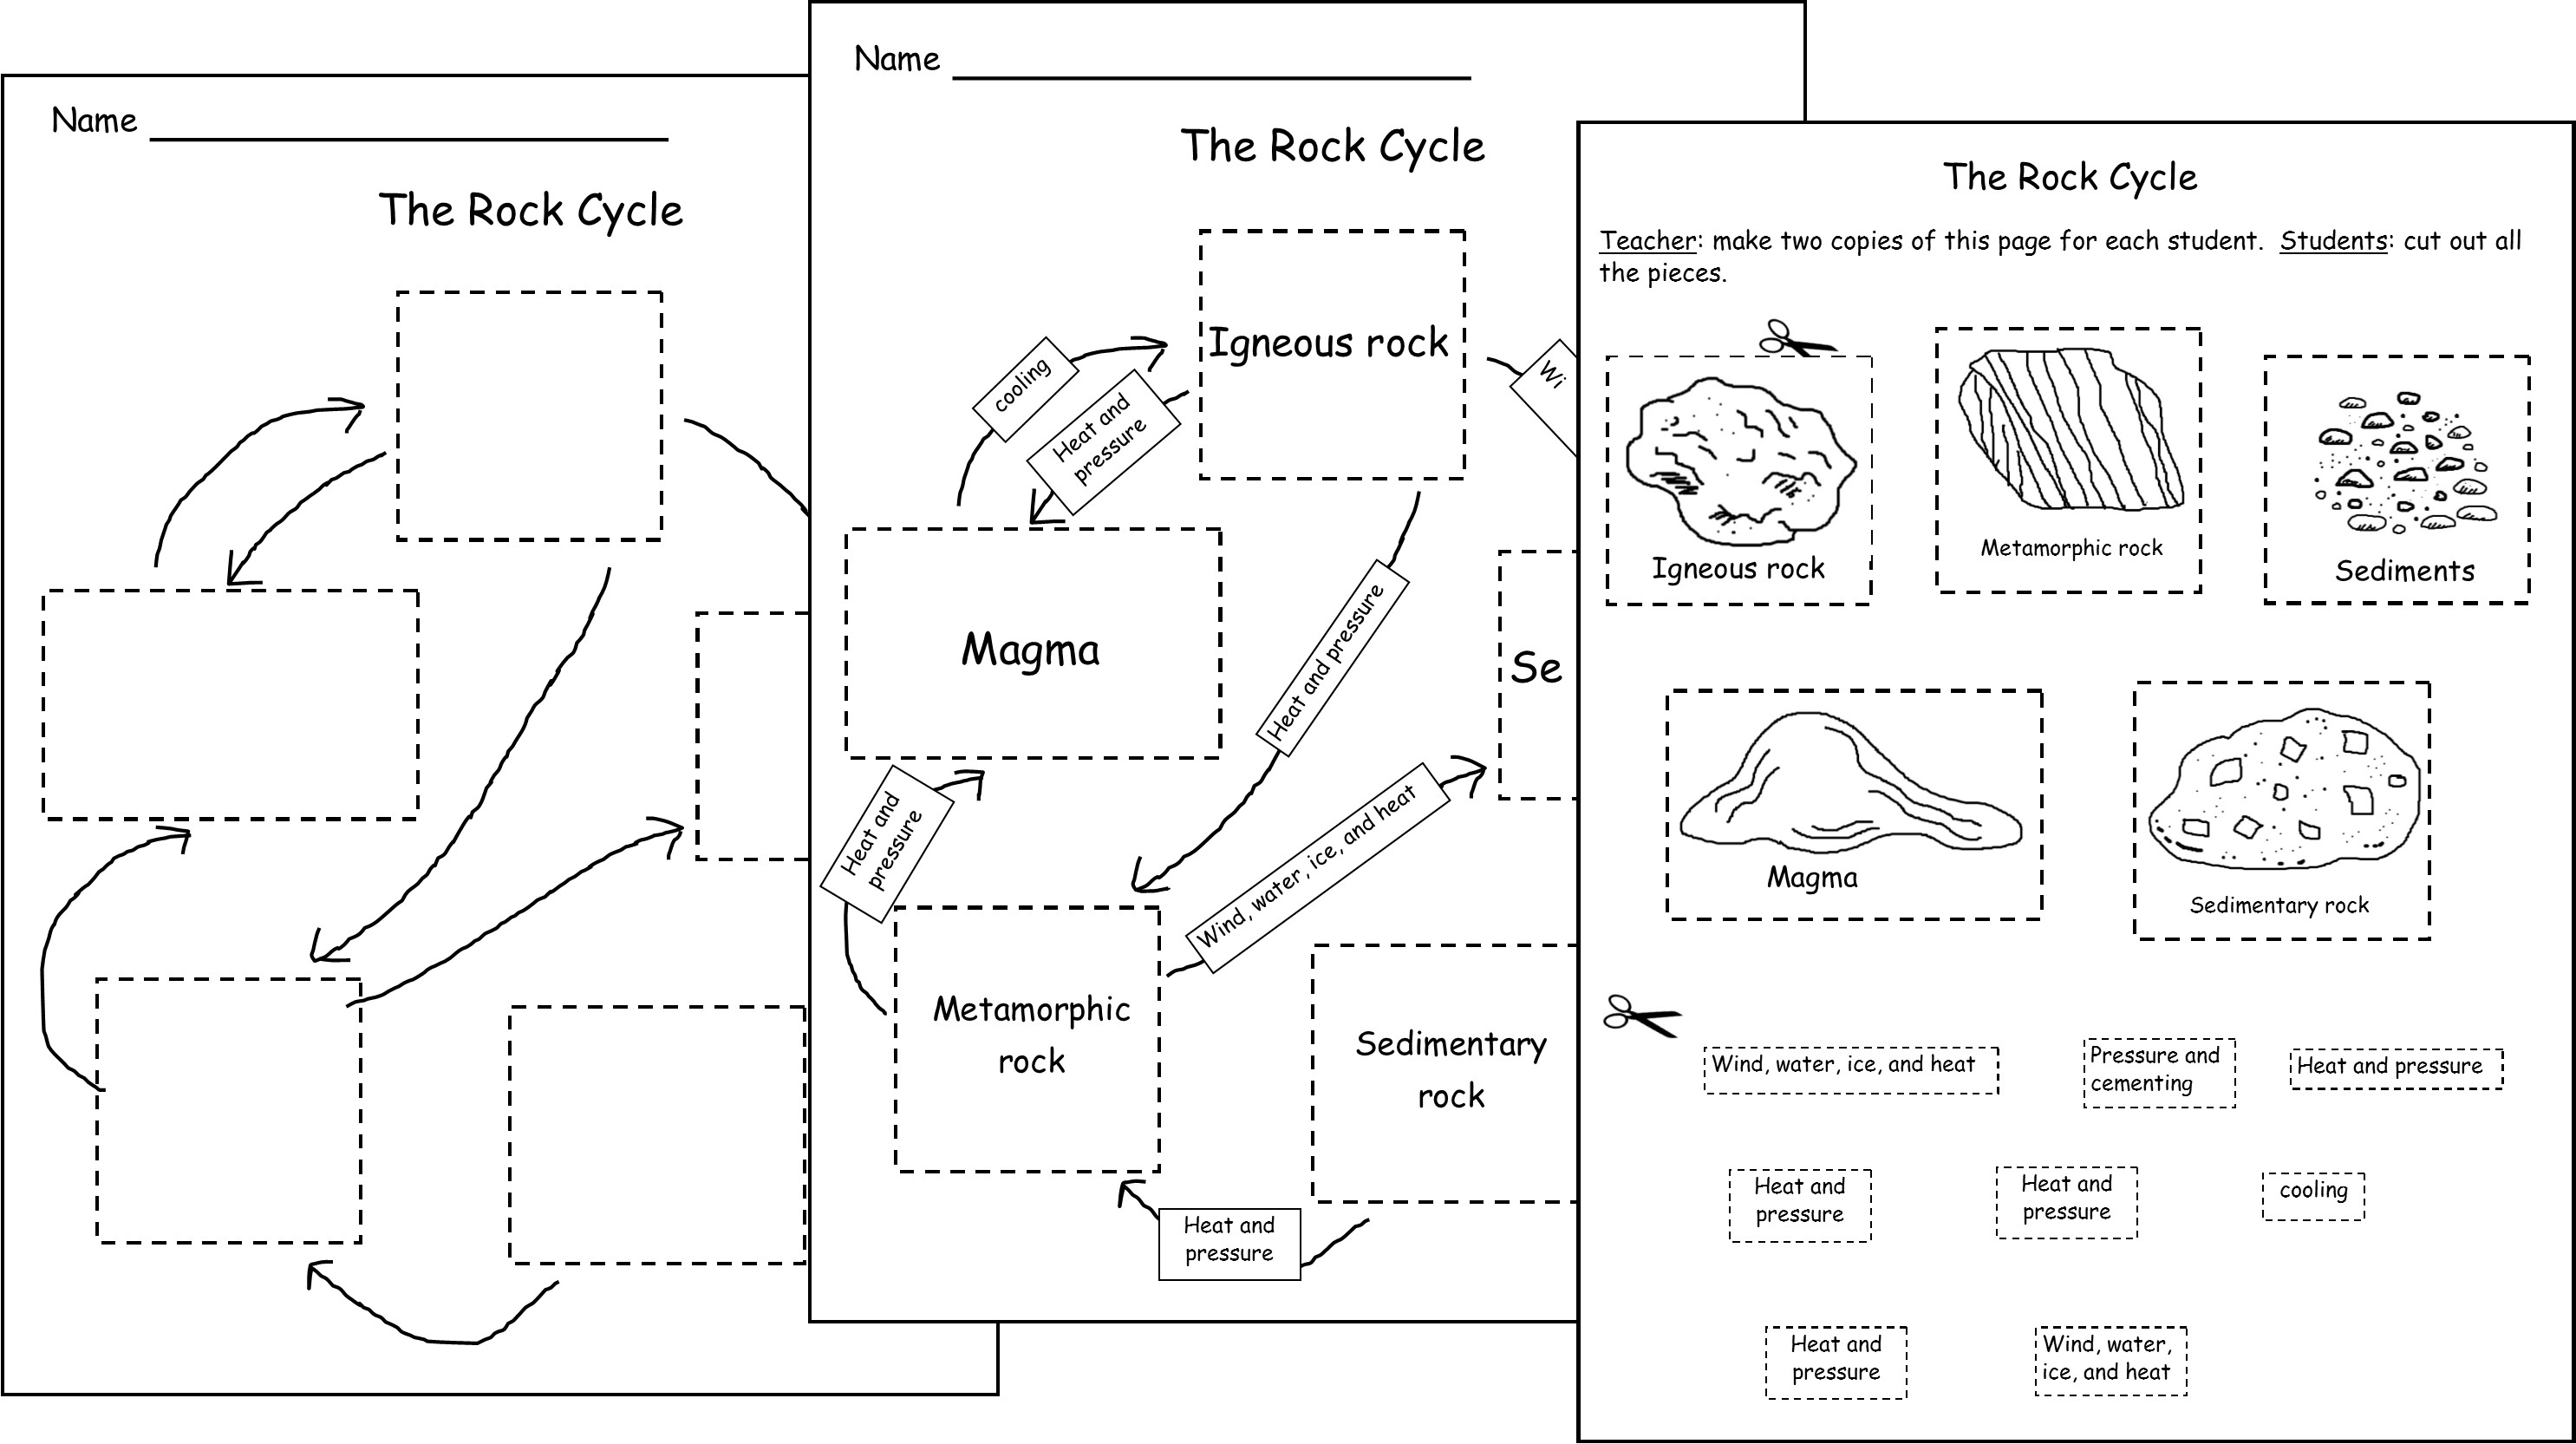 black and white drawings of the Rock Cycle